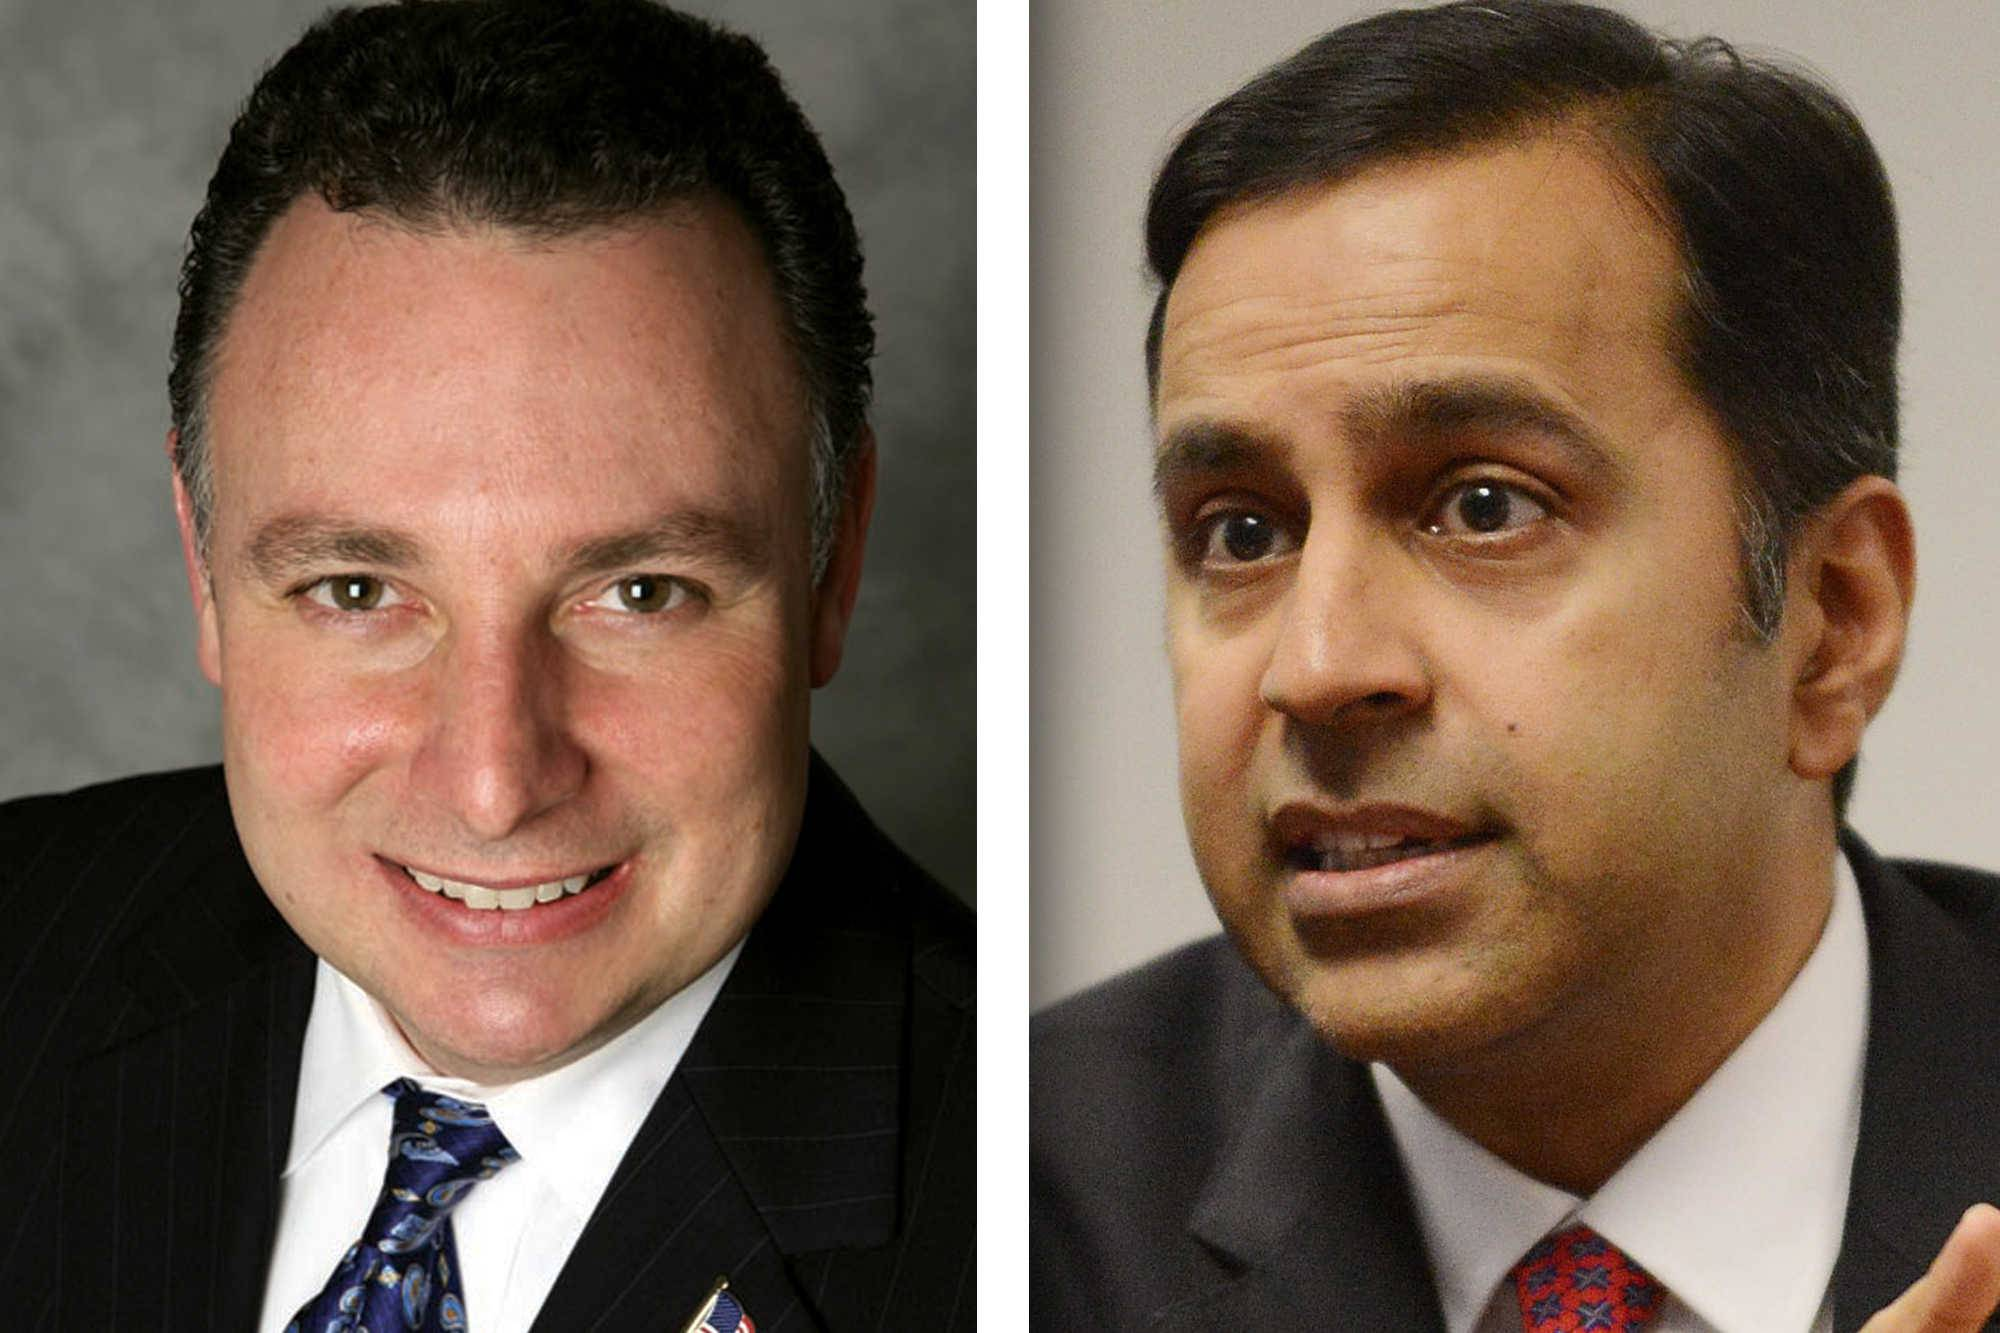 Pete DiCianni, left, and Raja Krishnamoorthi